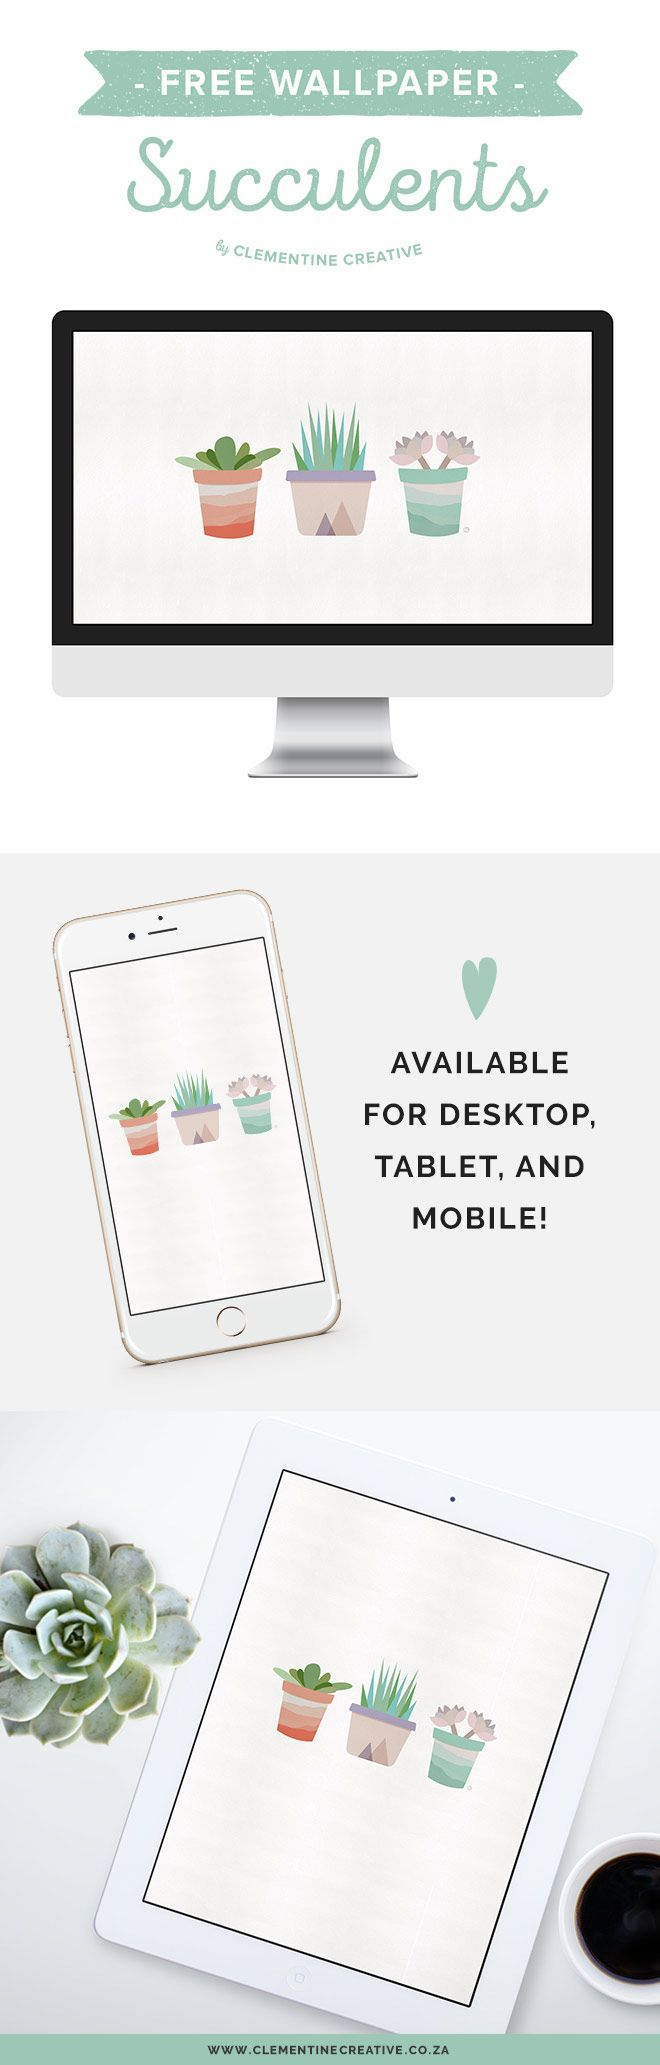 Free Desktop Wallpaper: Succulents. Download for your computer, tablet and mobile! | Curated pins by @4vector